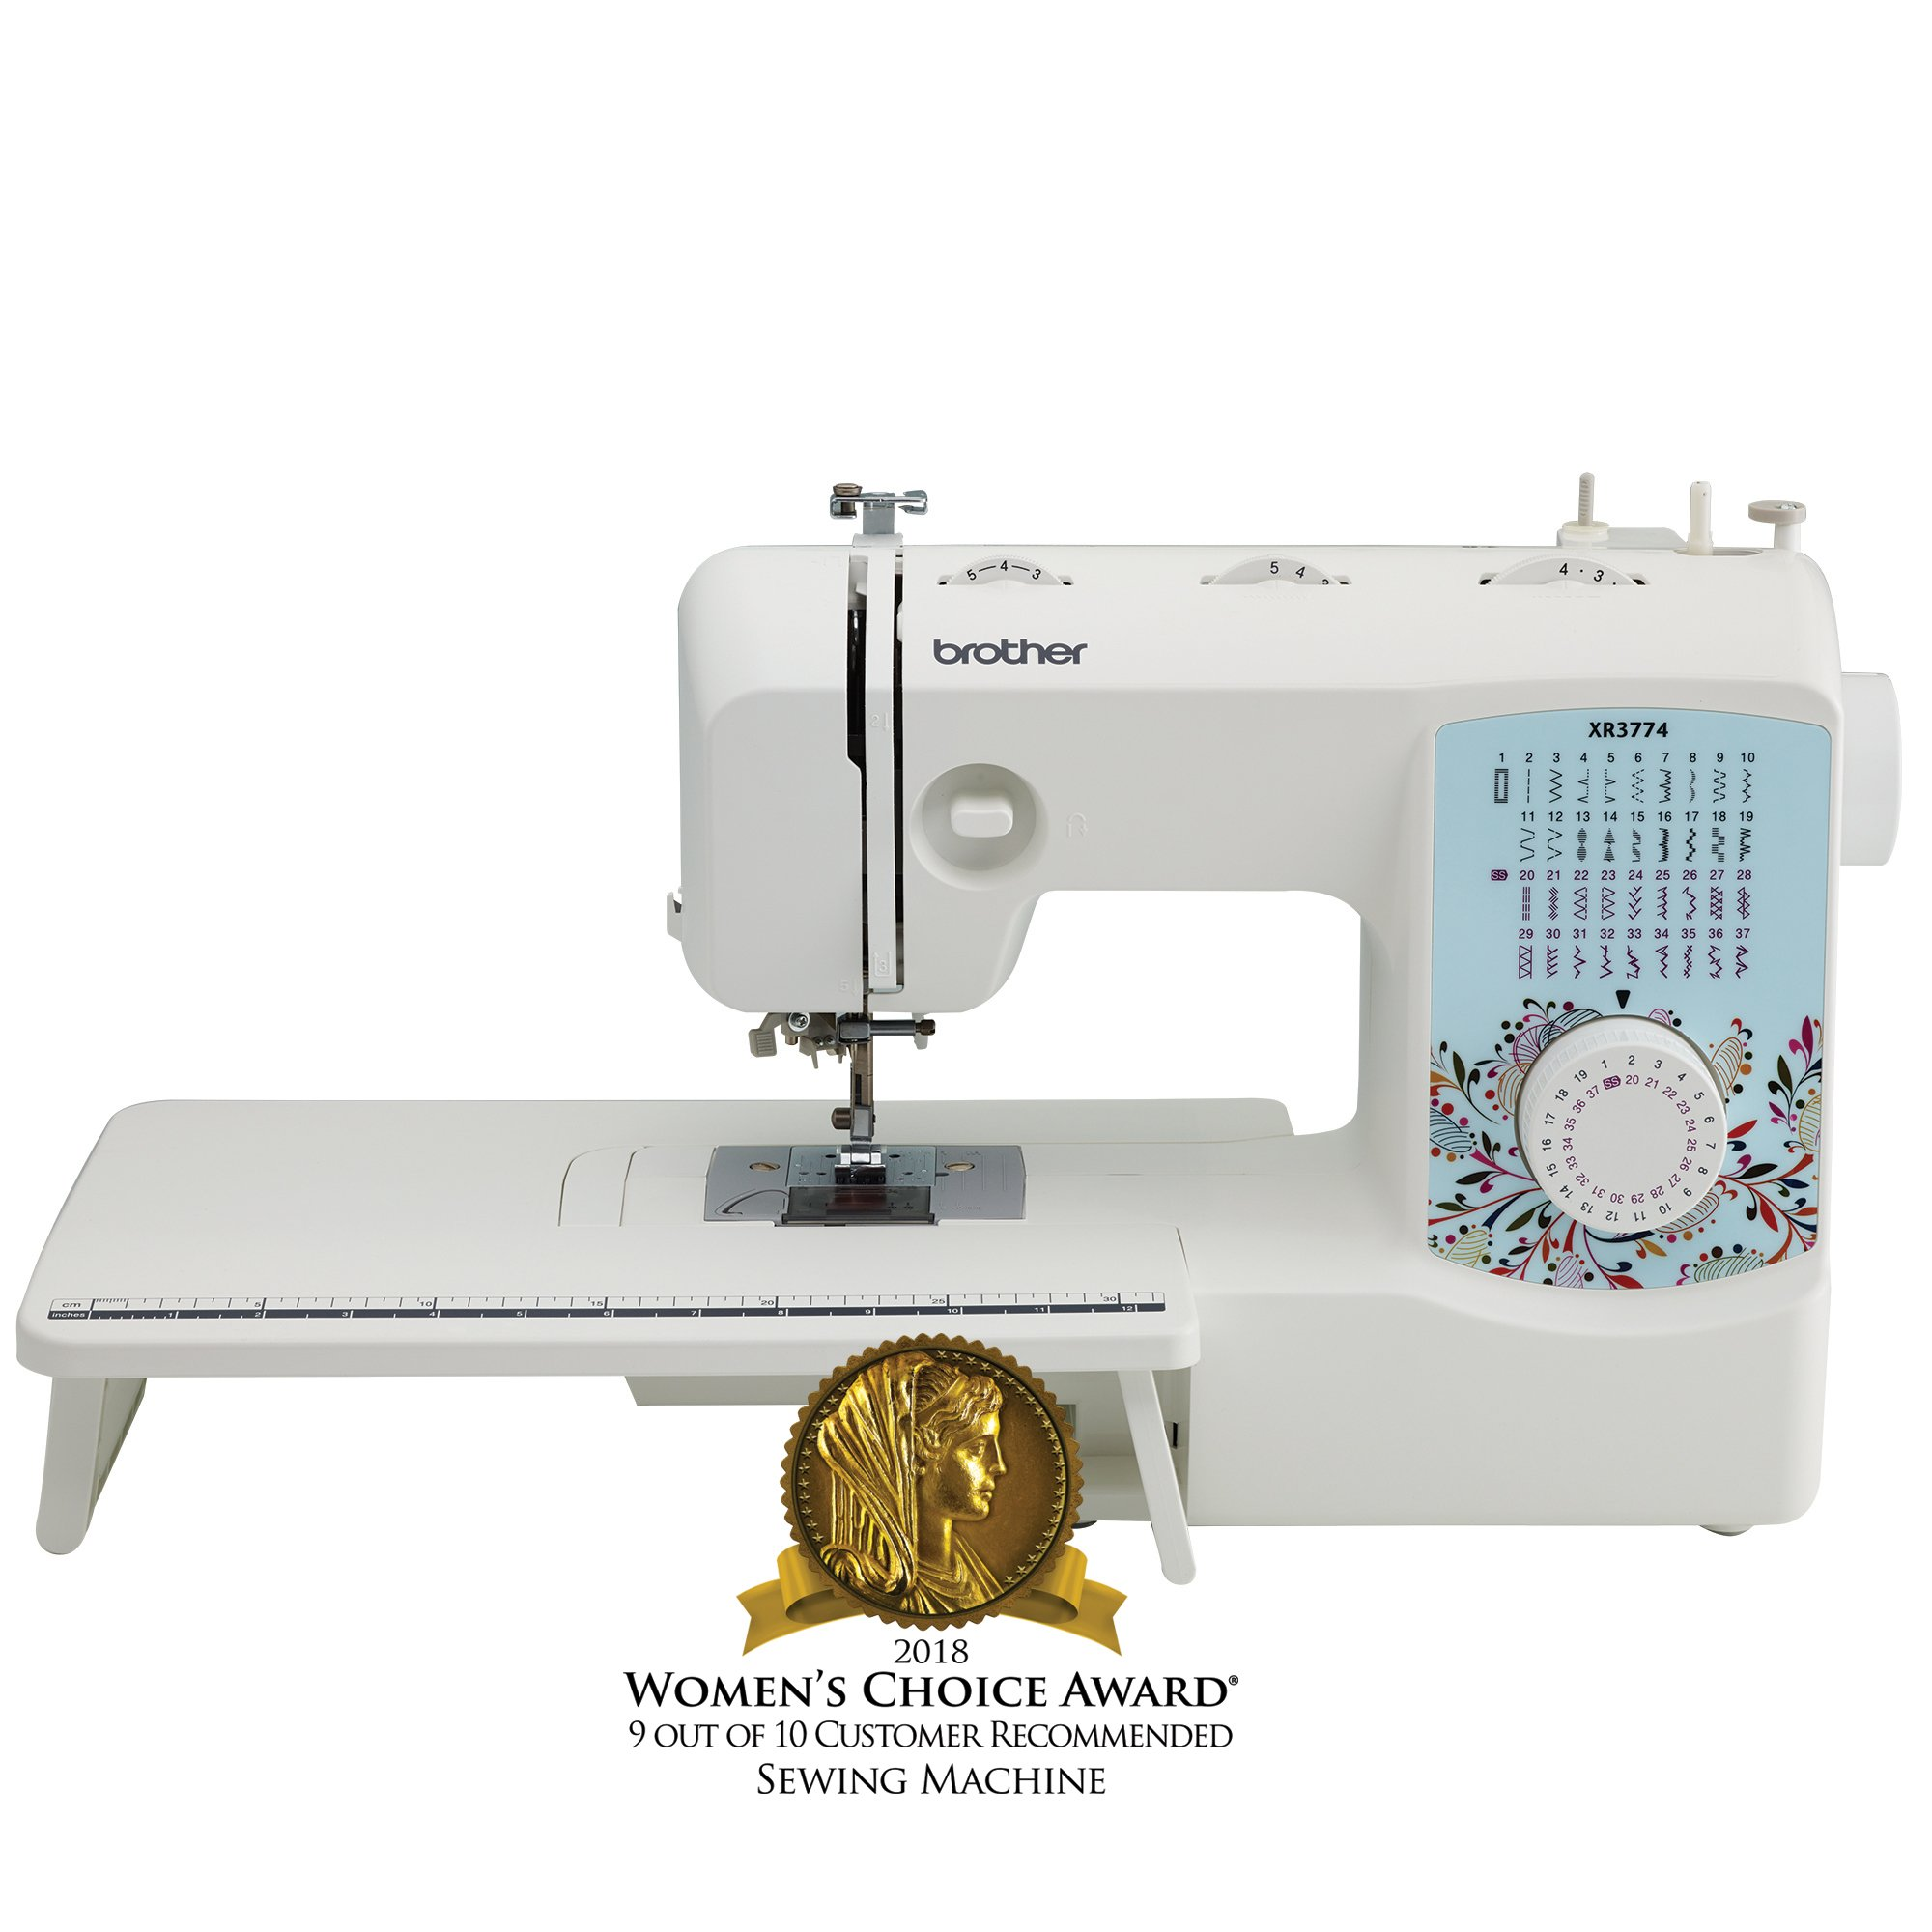 Best Rated In Sewing Machines Helpful Customer Reviews Kenmore Model 12 Machine Threading Diagram Brother Xr3774 Full Featured Quilting With 37 Stitches 8 Feet Wide